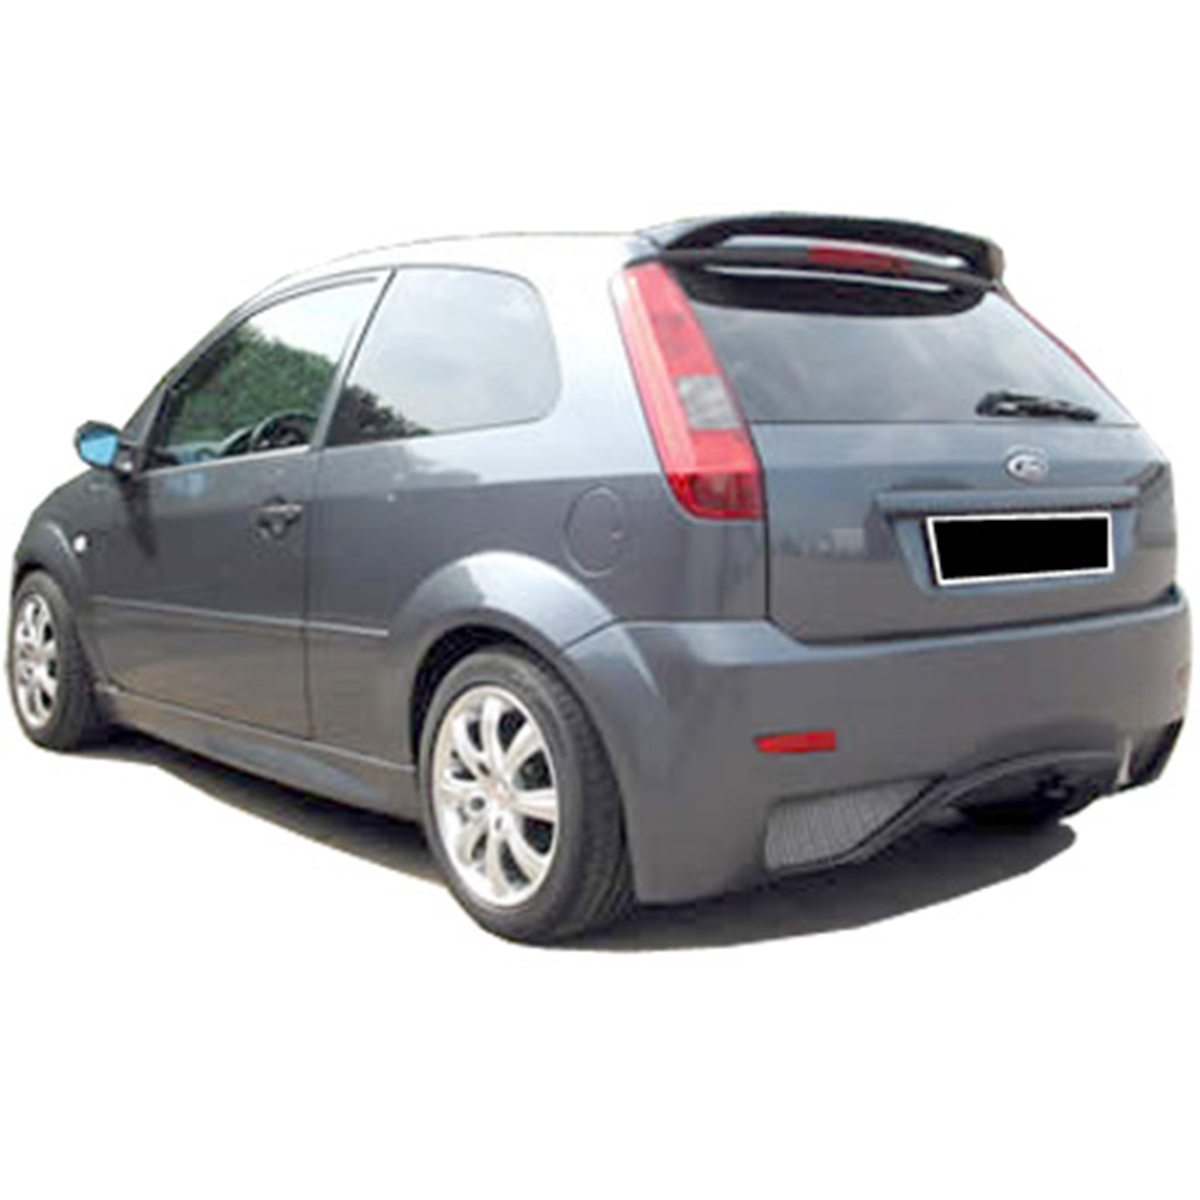 Ford-Fiesta-02-Thor-tras-PCA032